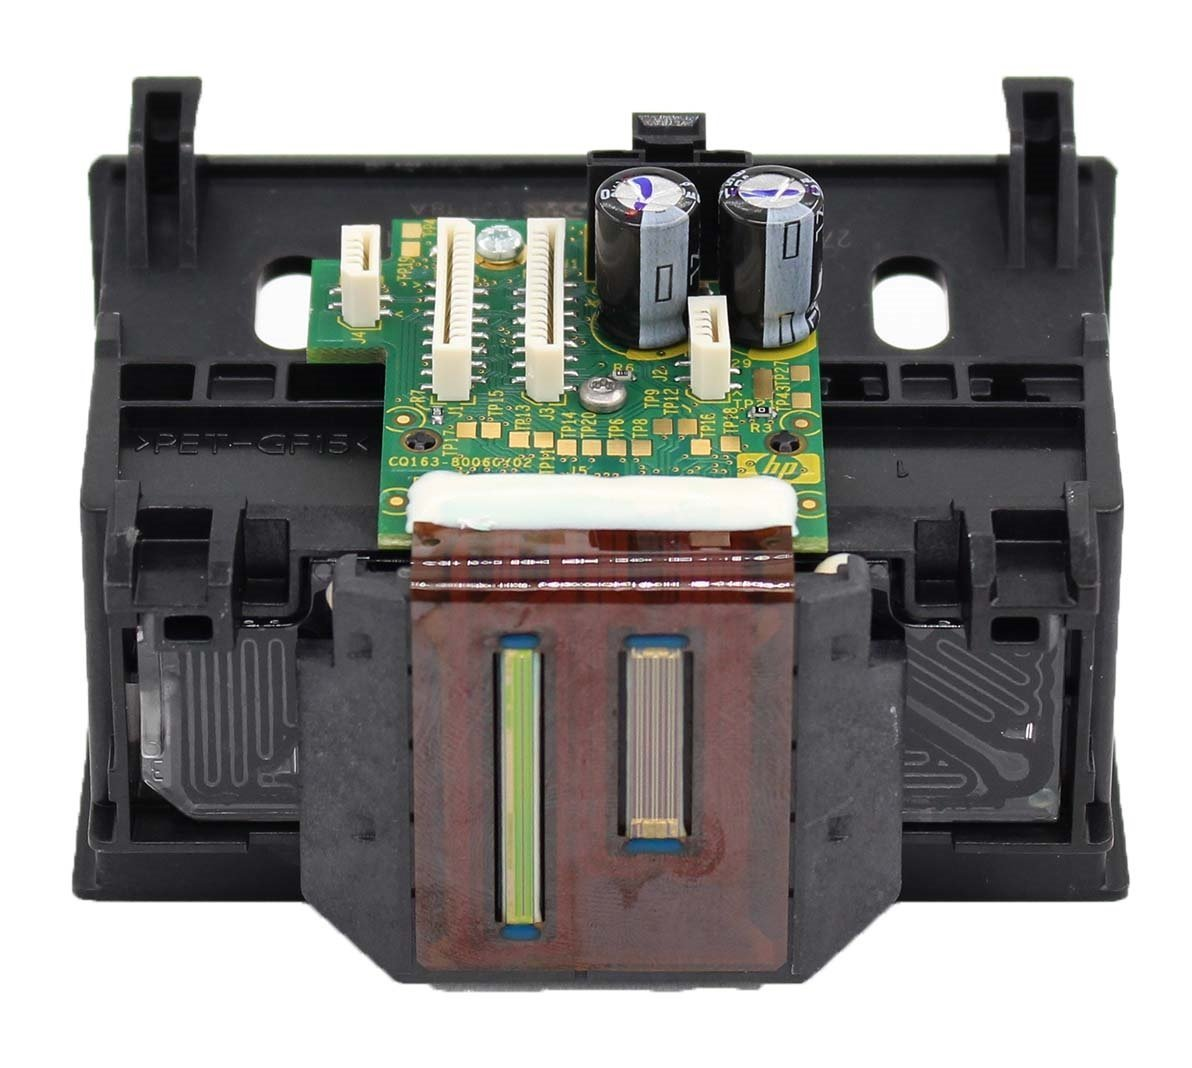 934 935 Print Head For HP Officejet Pro 6230 6830 6815 6812 6835 c2p18a 934 935 xl 934xl 935xl printhead printer print head for hp 6800 6810 6812 6815 6820 6822 6825 6830 6835 6200 6230 6235